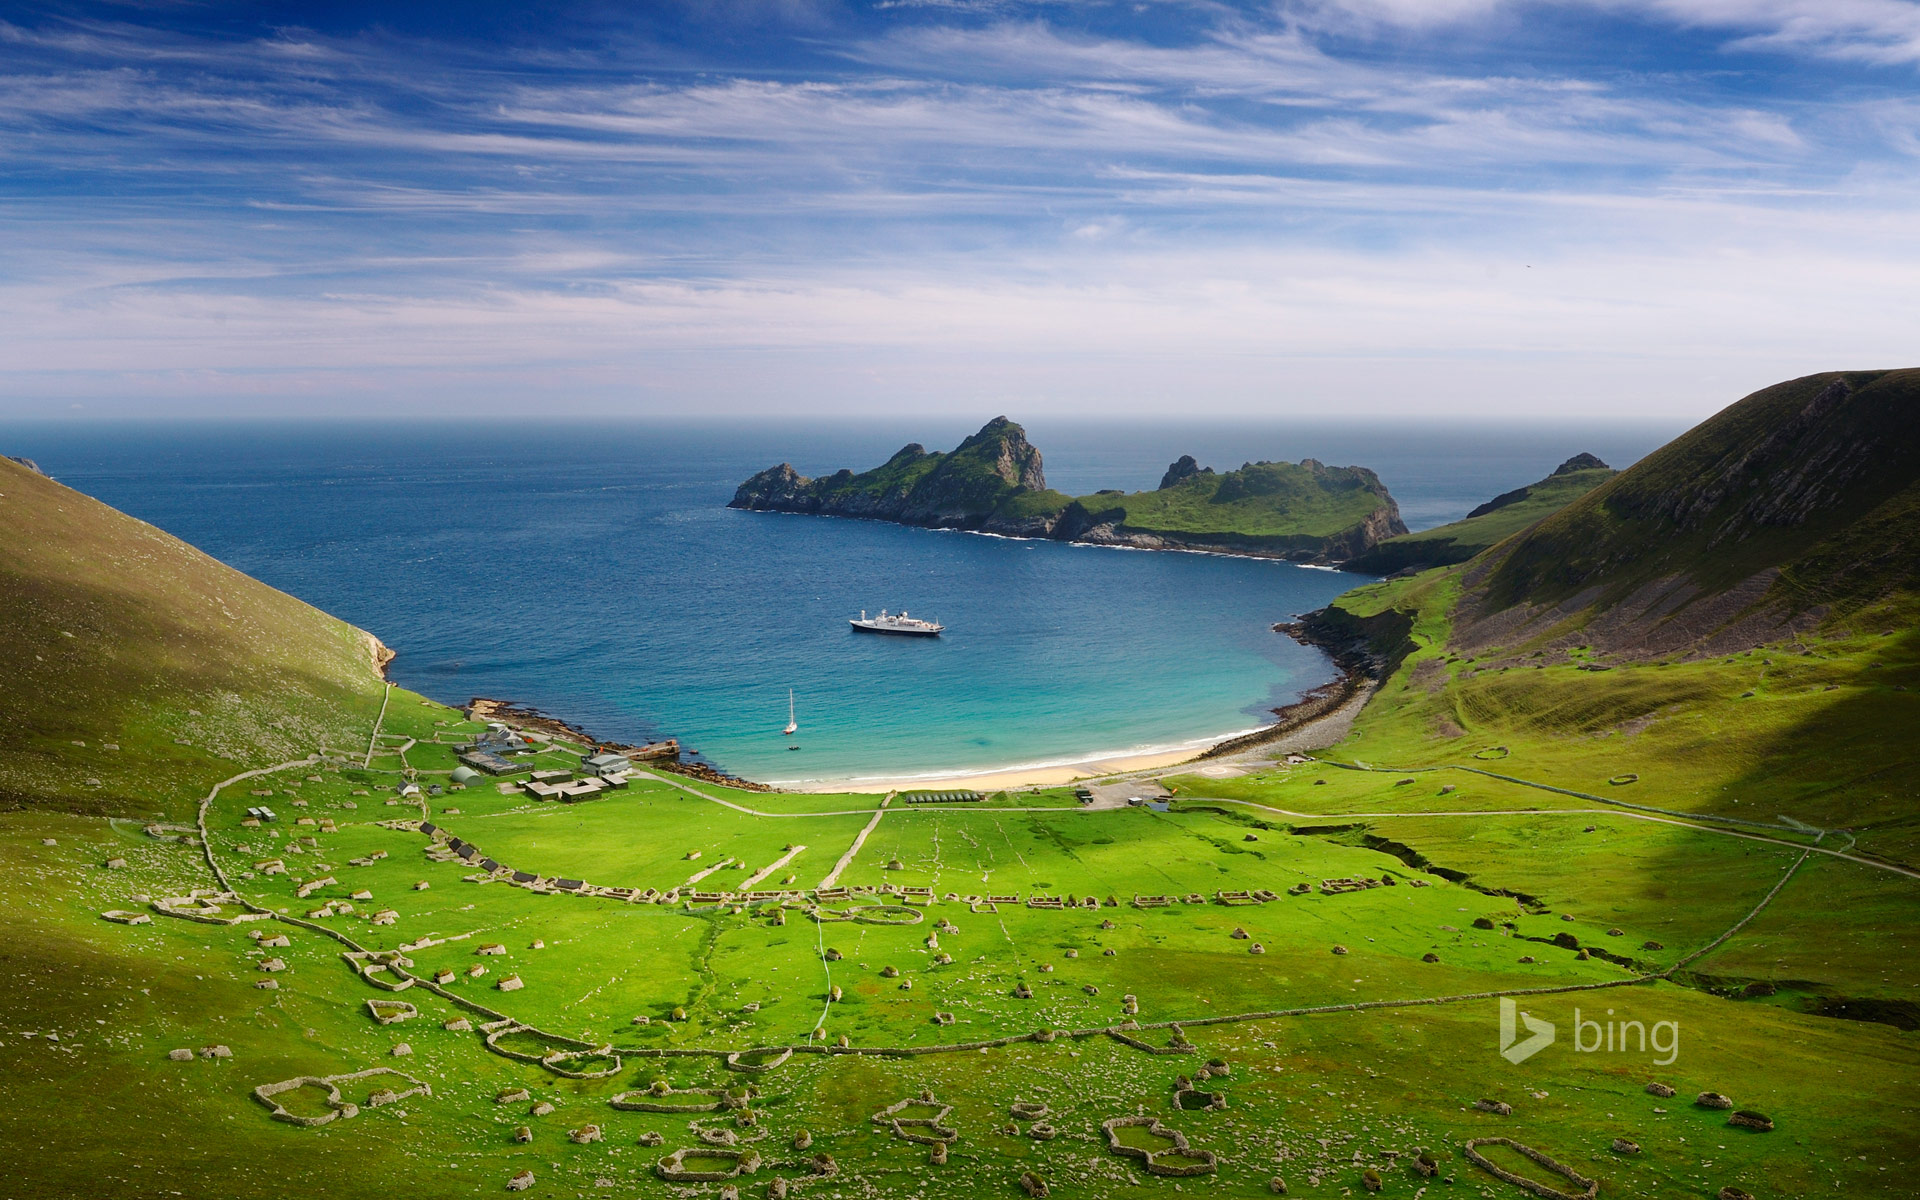 Village Bay on the island of Hirta, Scotland